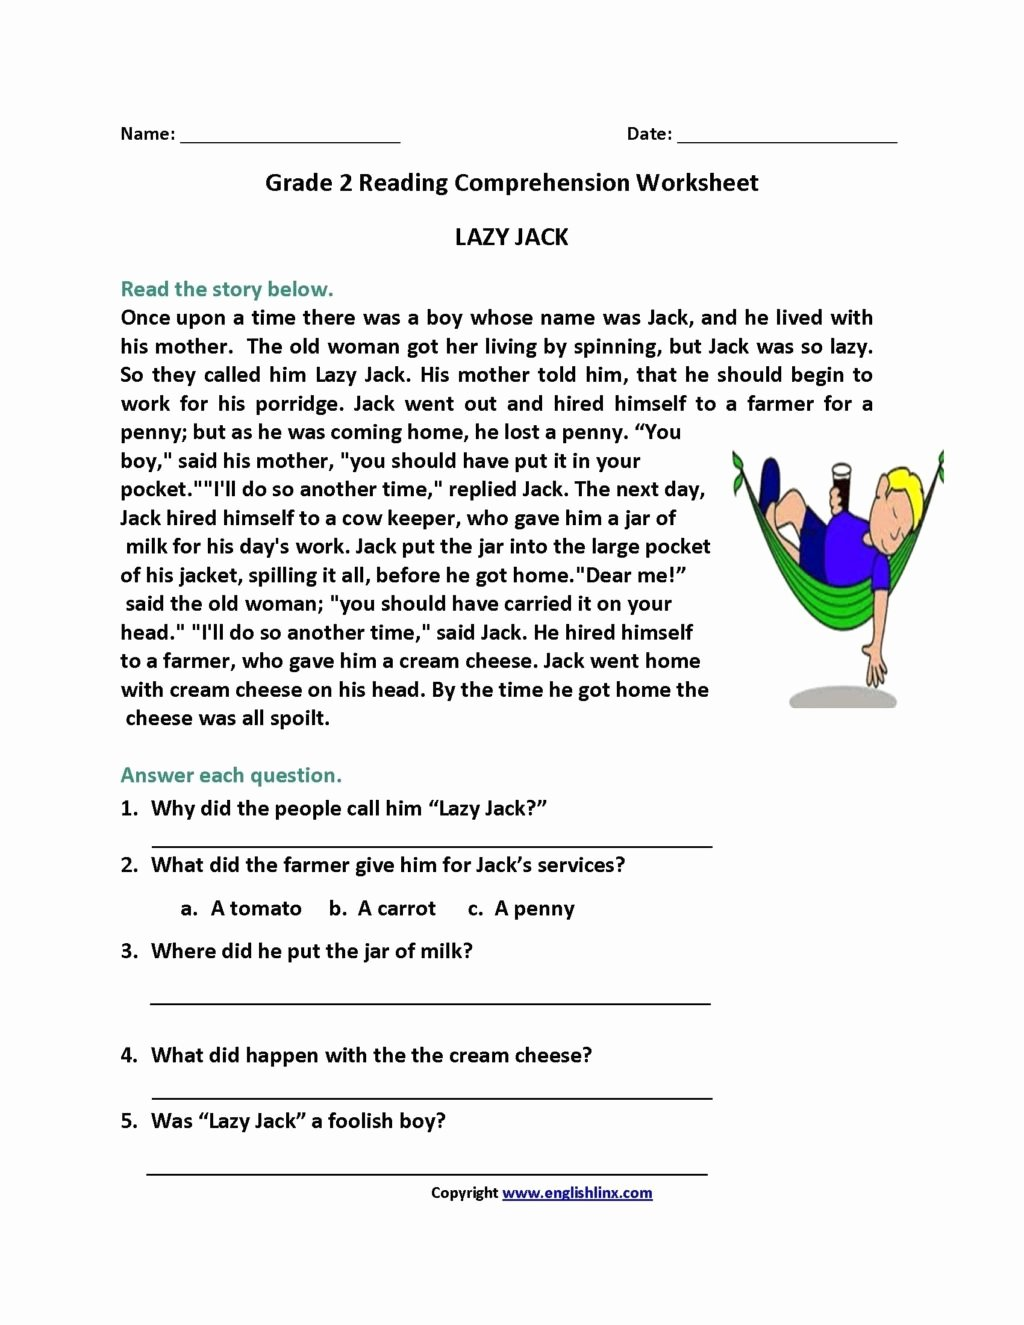 Grade 2 Reading Comprehension Worksheets Inspirational Worksheet Reading Prehension Worksheets for 2ndade as